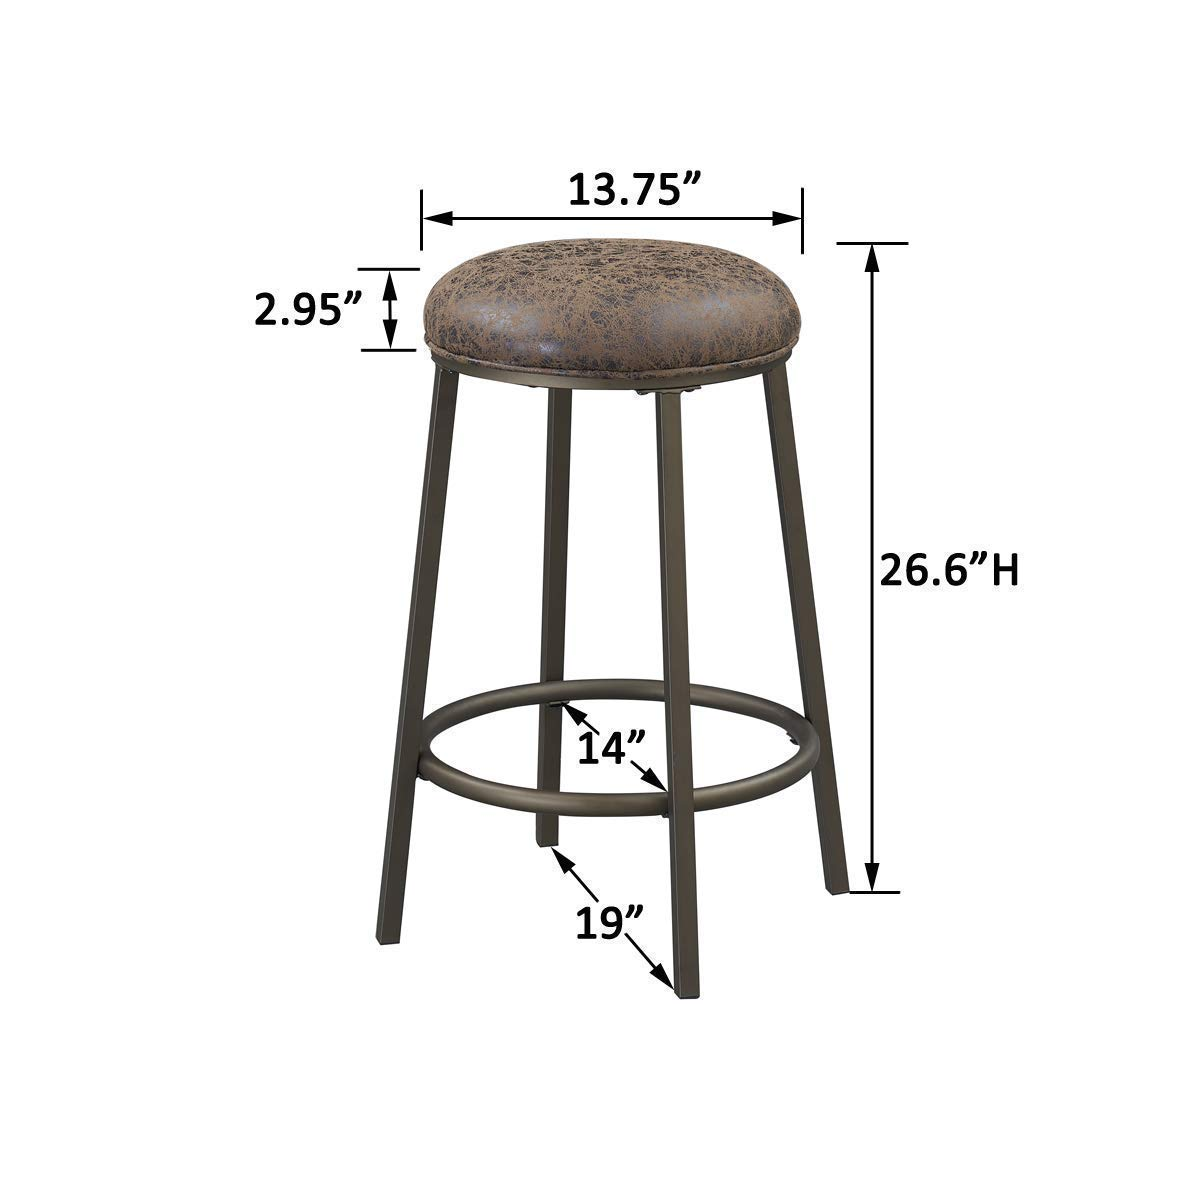 O&K Furniture Set of 4 Counter Height Stool Chairs, Industrial Style Round Metal Bar Stools, Kitchen Backless Stools Distressed Brown Upholstered Seat, 26.6-Inch High